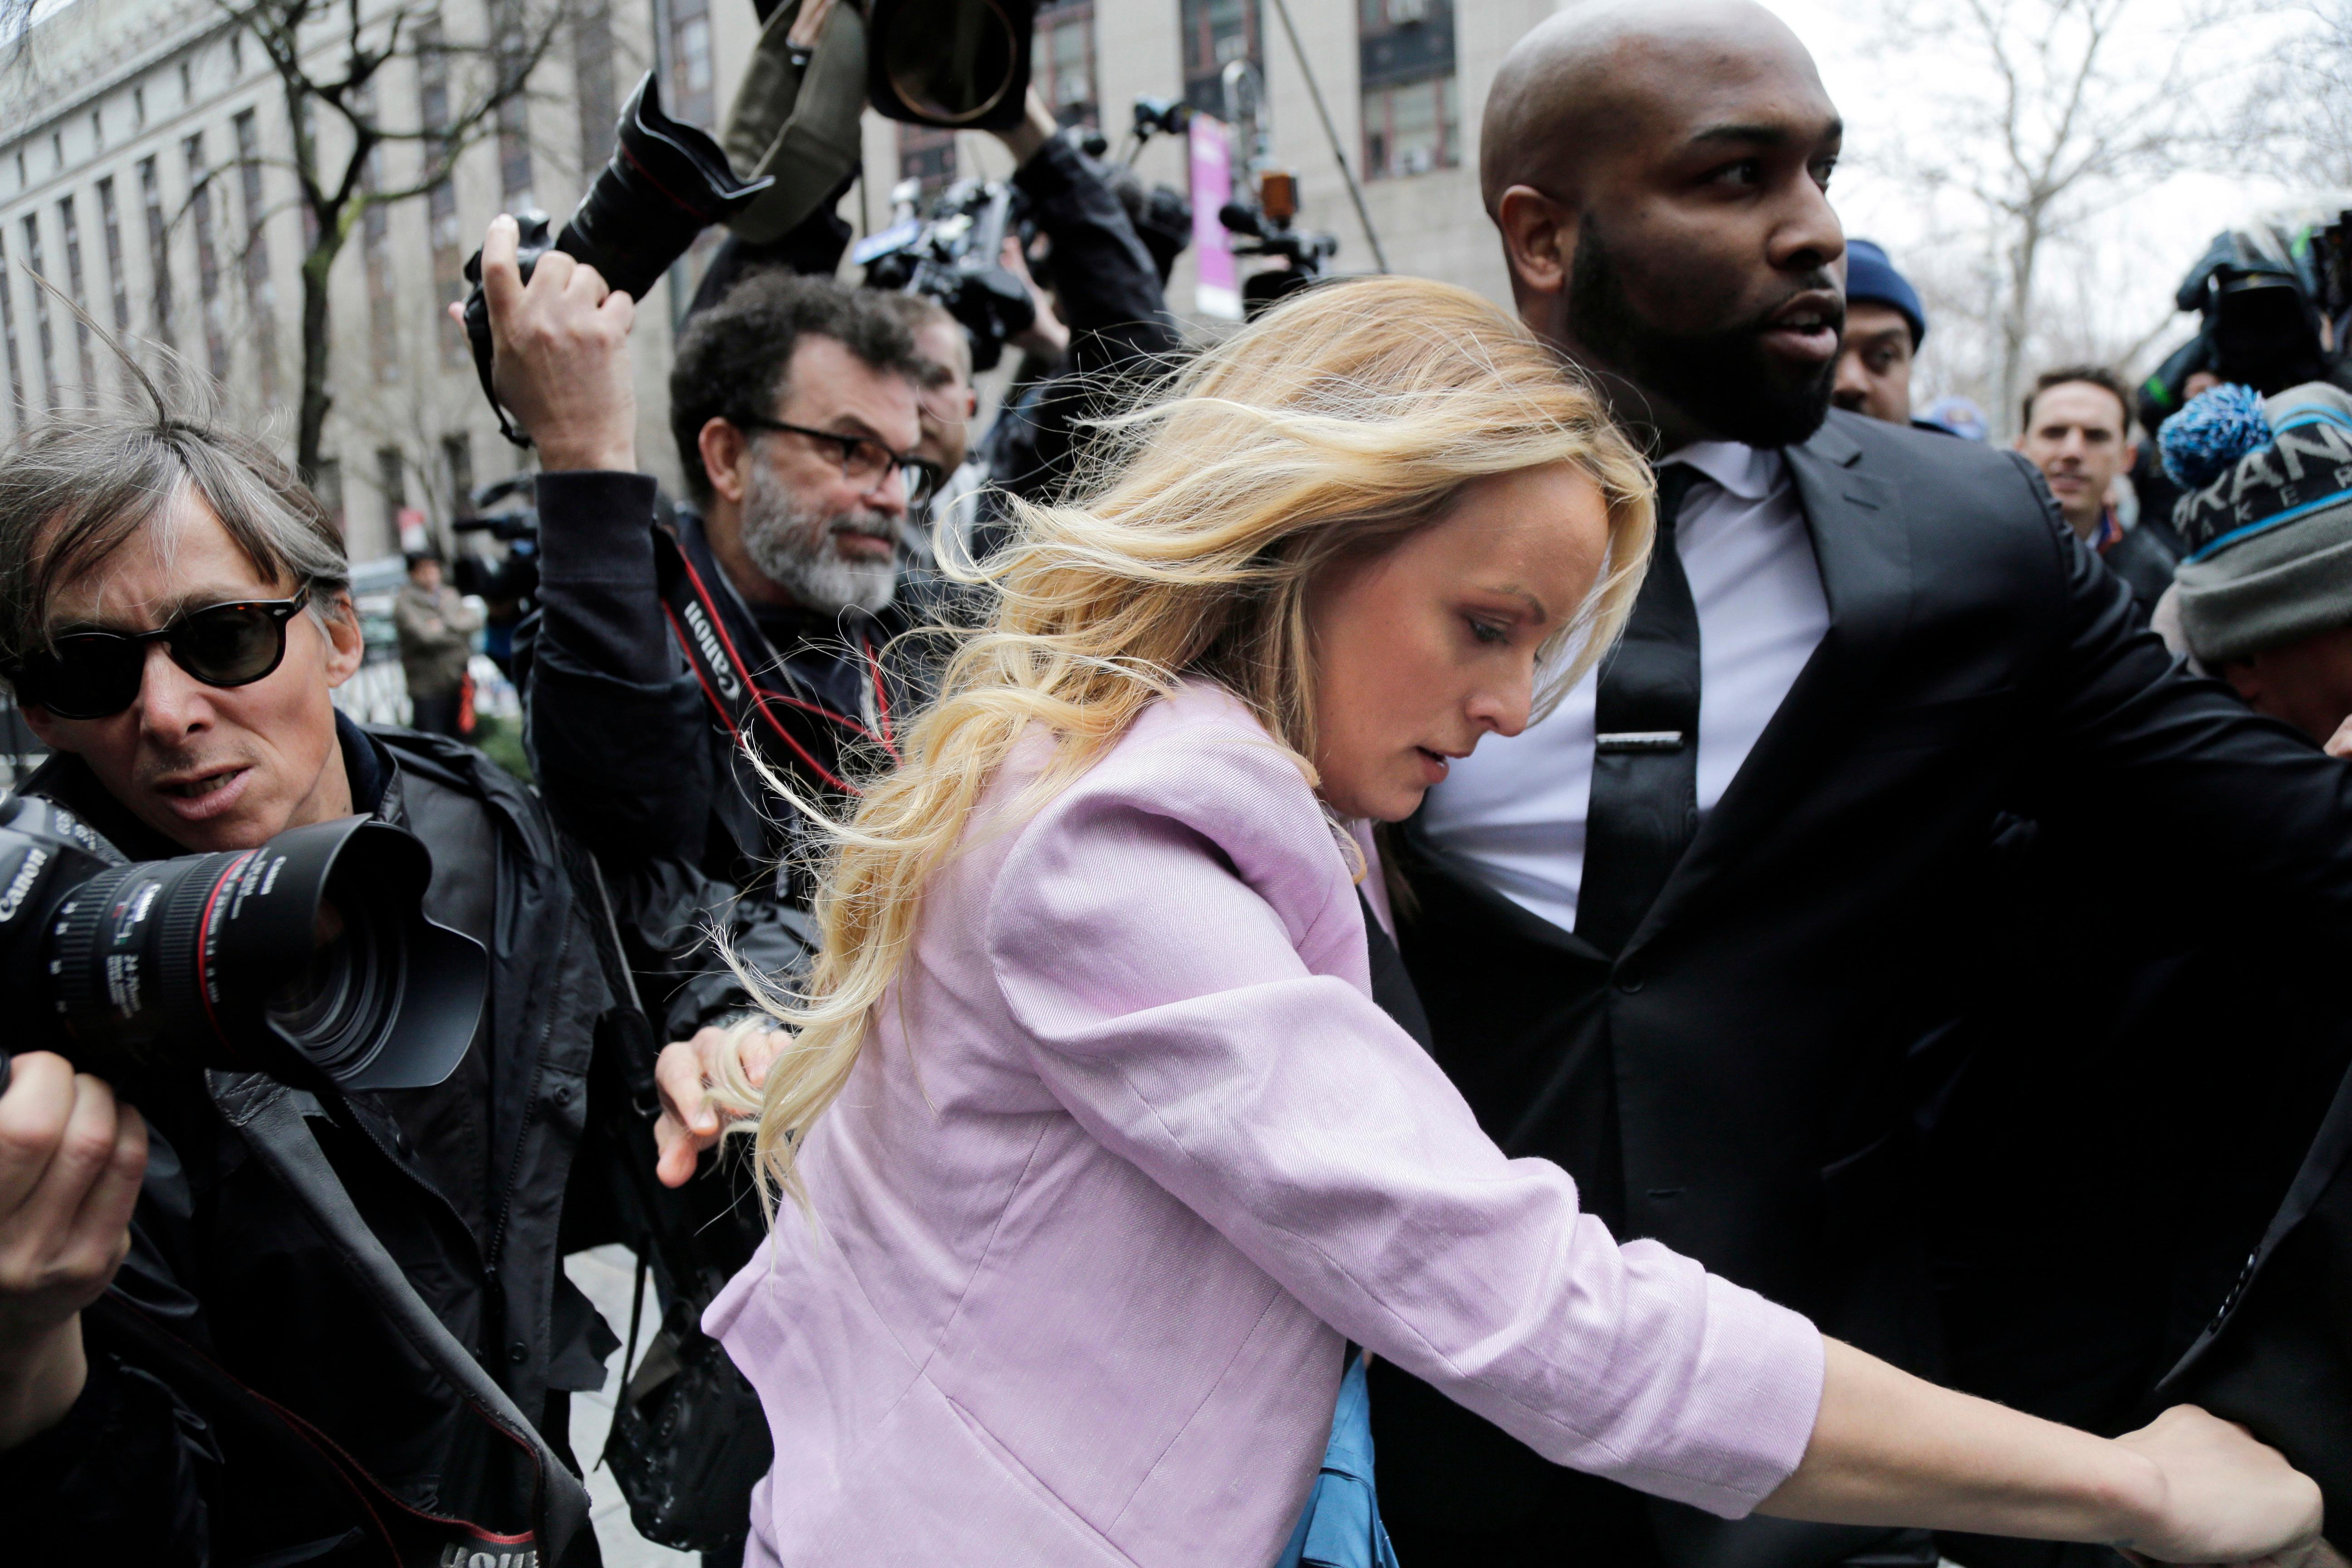 Stormy Daniels arrives at federal court in New York, Monday, April 16, 2018, to attend a court hearing where a federal judge is considering how to review materials that the FBI seized from President Donald Trump's personal lawyer to determine whether they should be protected by attorney-client privilege.(AP Photo/Seth Wenig)